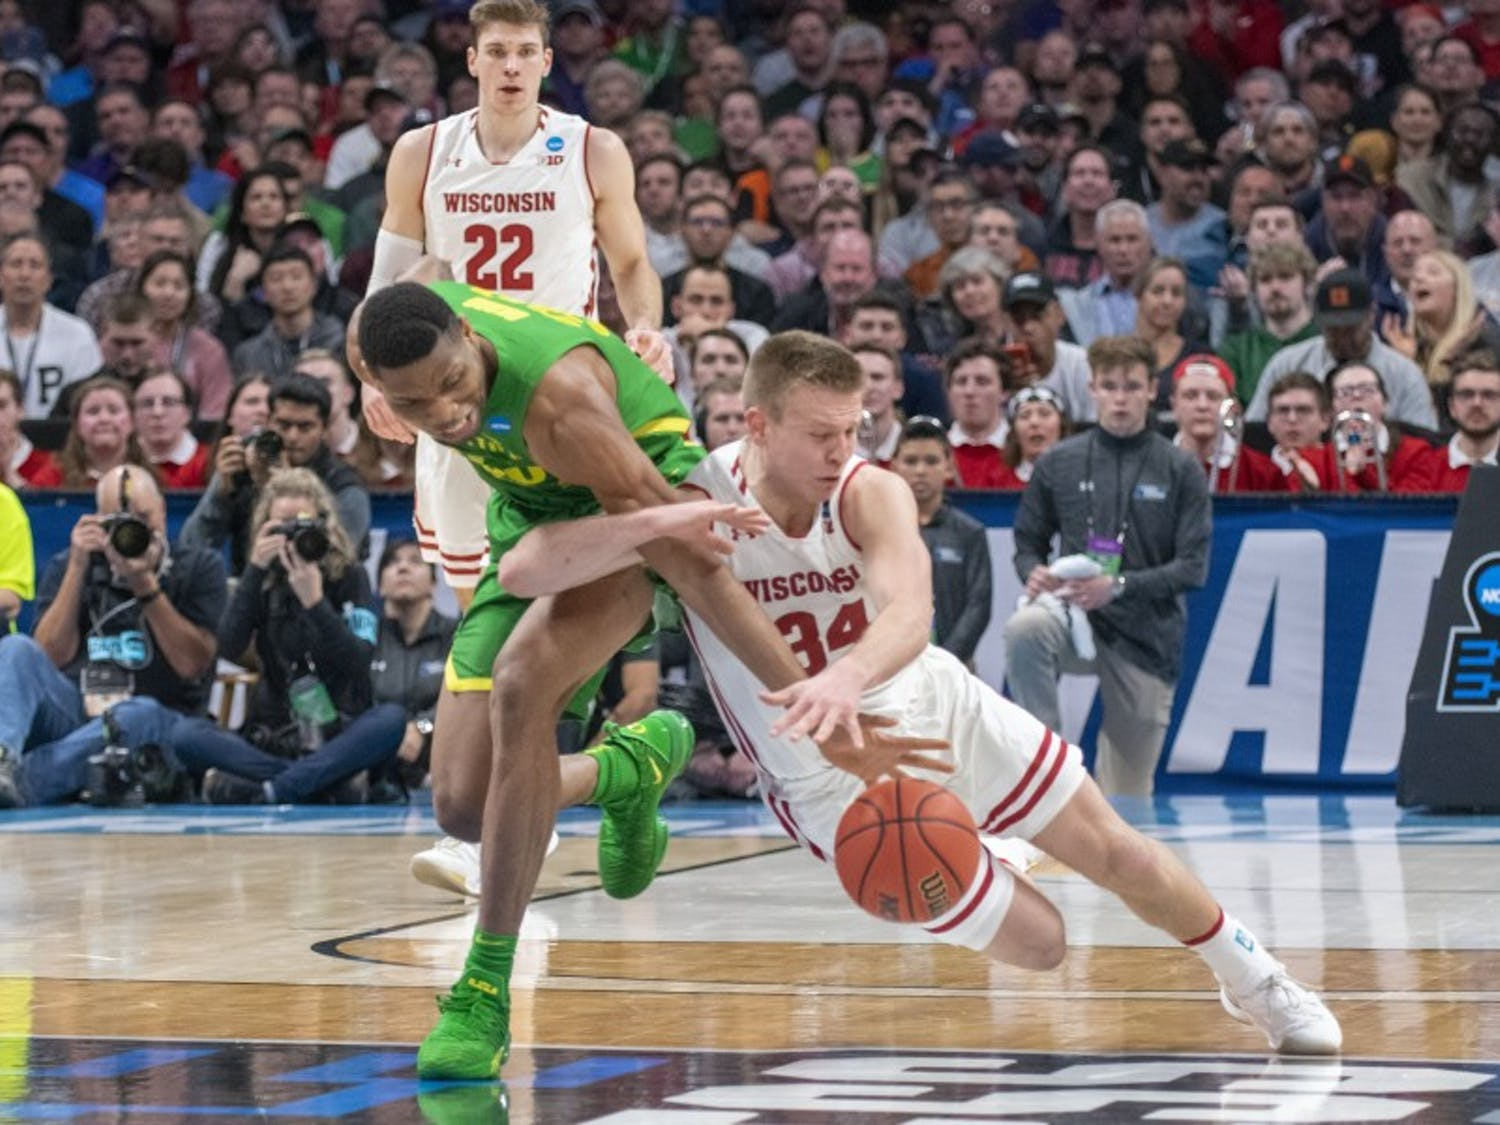 Wisconsin was able to hold its own when the game was slow and physical, but it simply couldn't compete with Oregon when the play sped up.